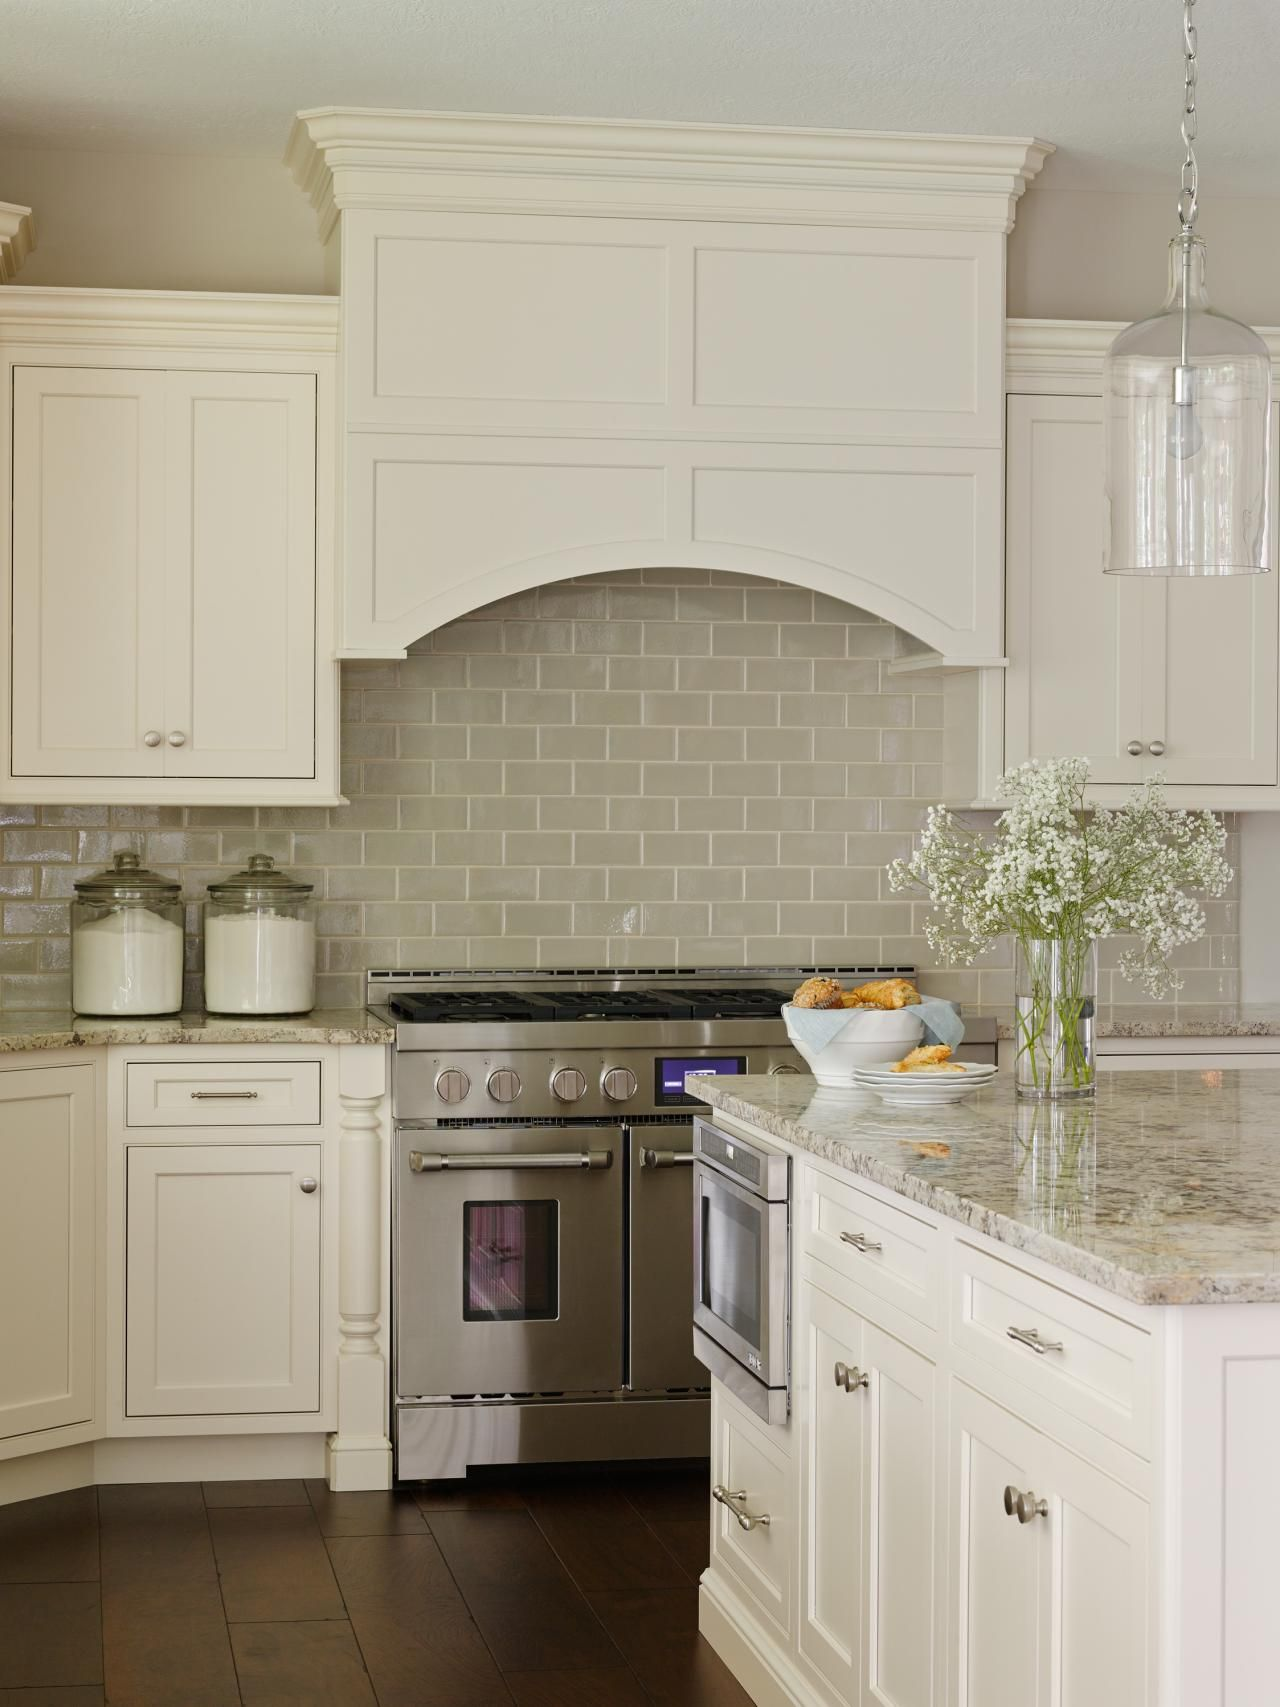 Best Kitchen Kitchen Remodel Kitchen Inspirations Kitchen Design